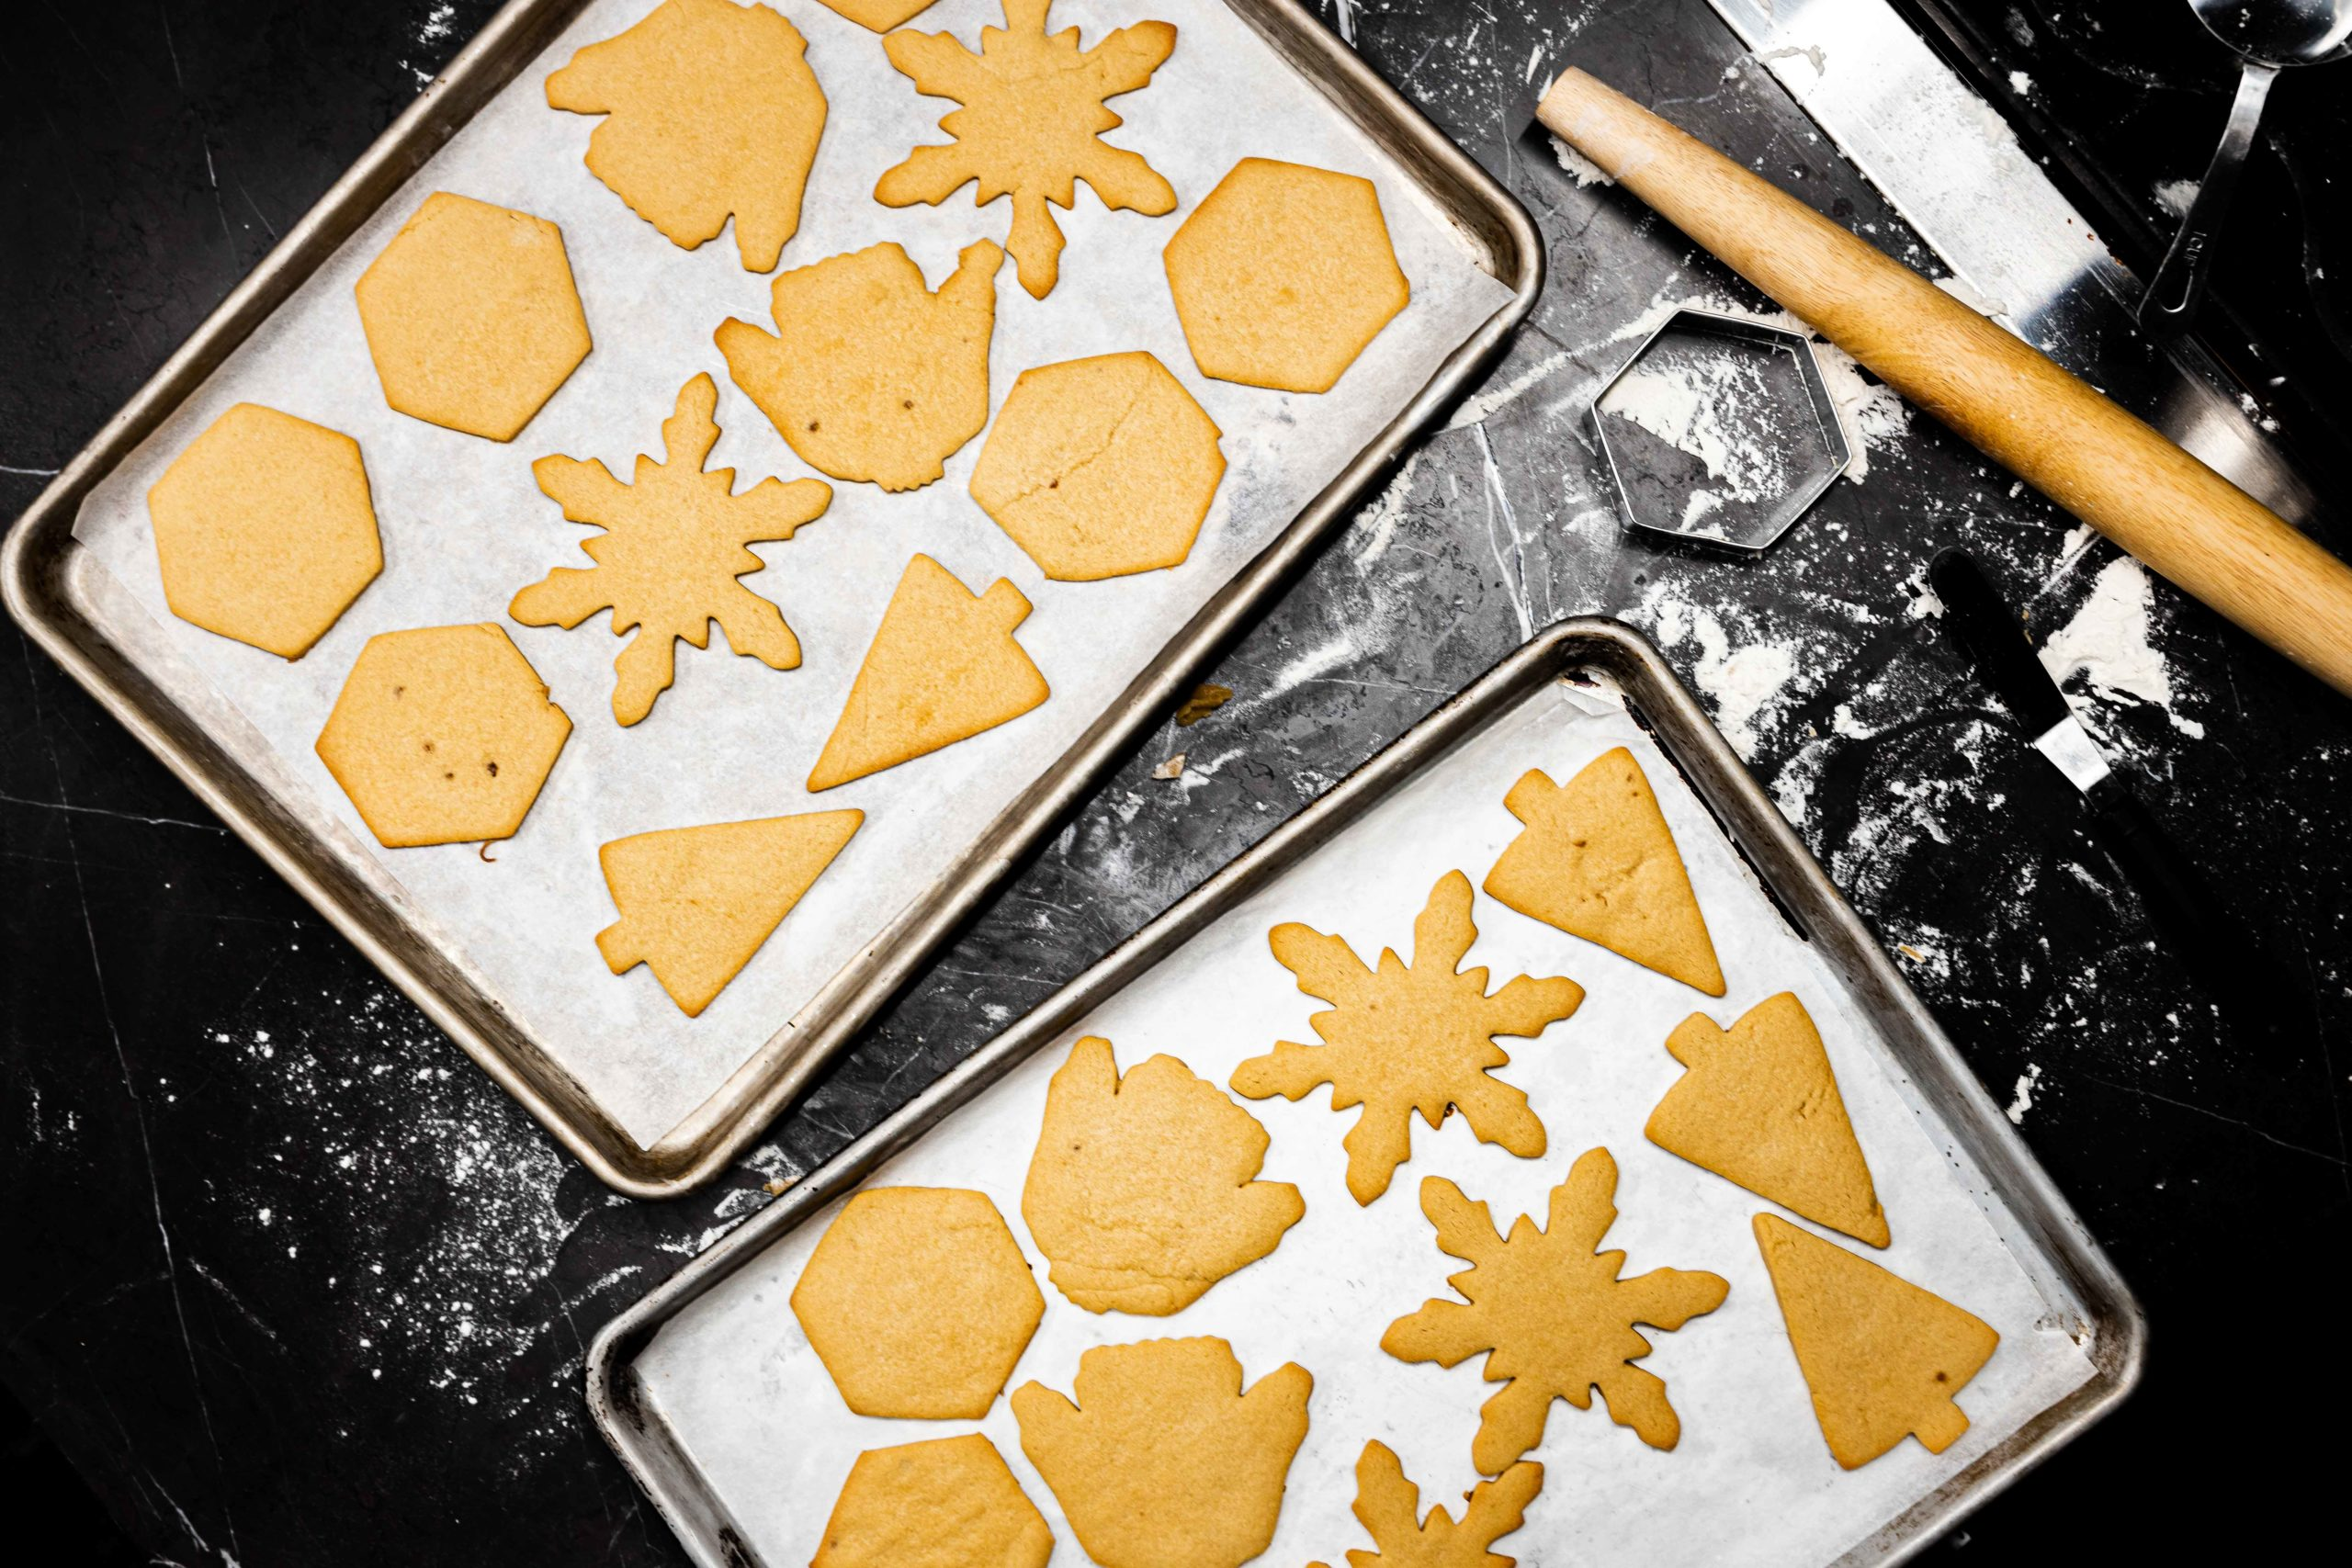 Beautiful, golden-brown cookies ready for decorating